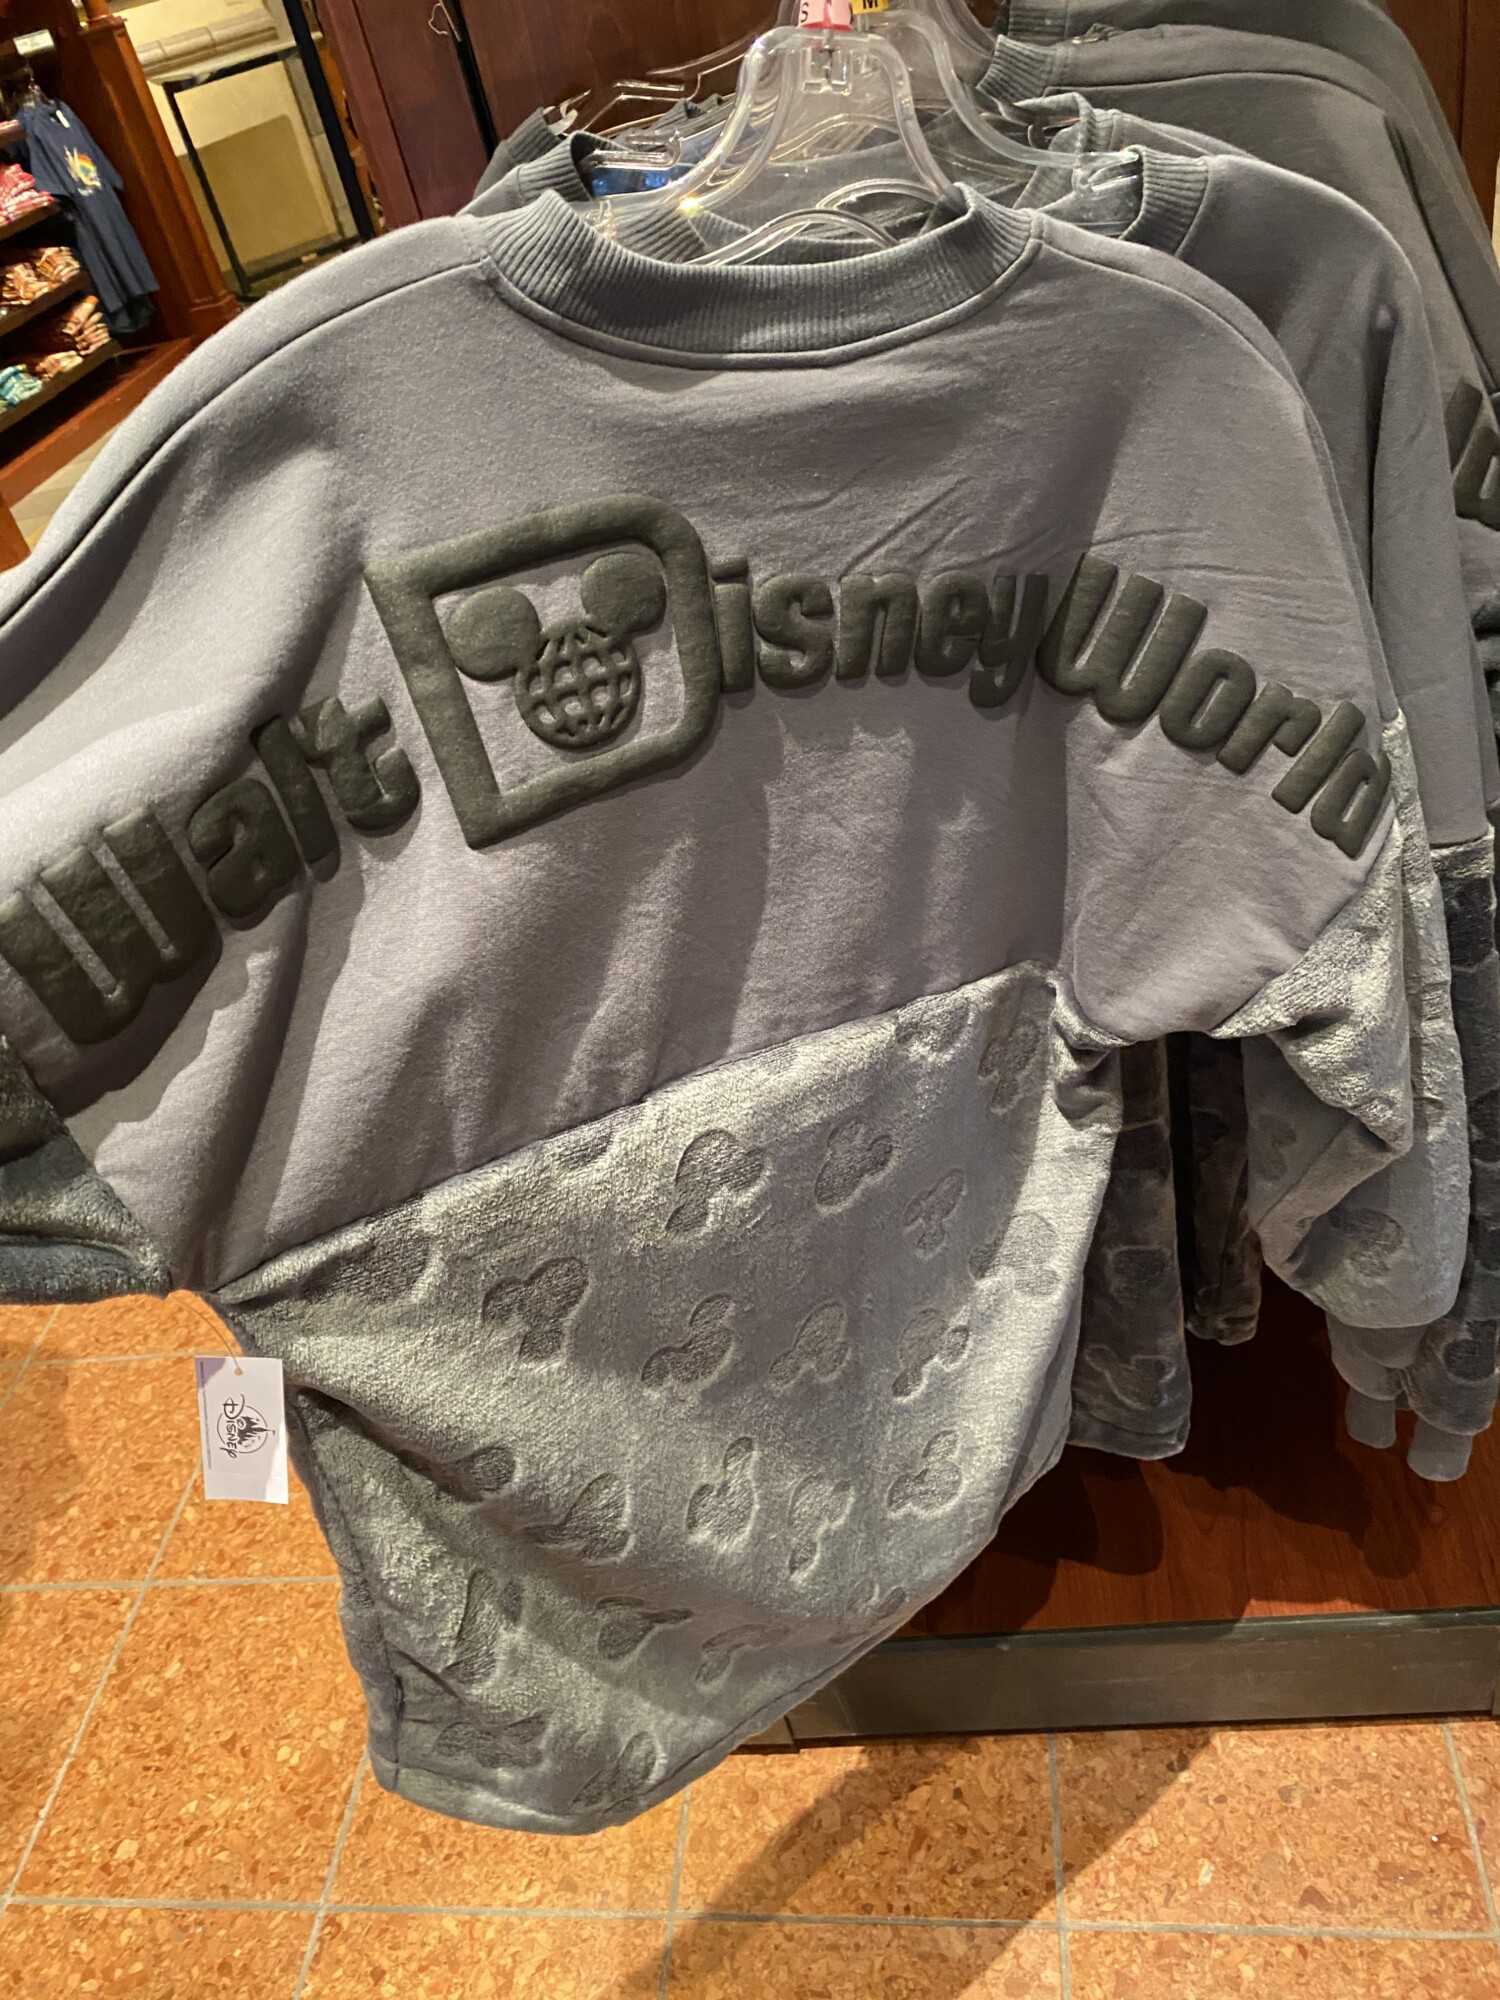 New Sparkly Silver Apparel at Hollywood Studios! 14